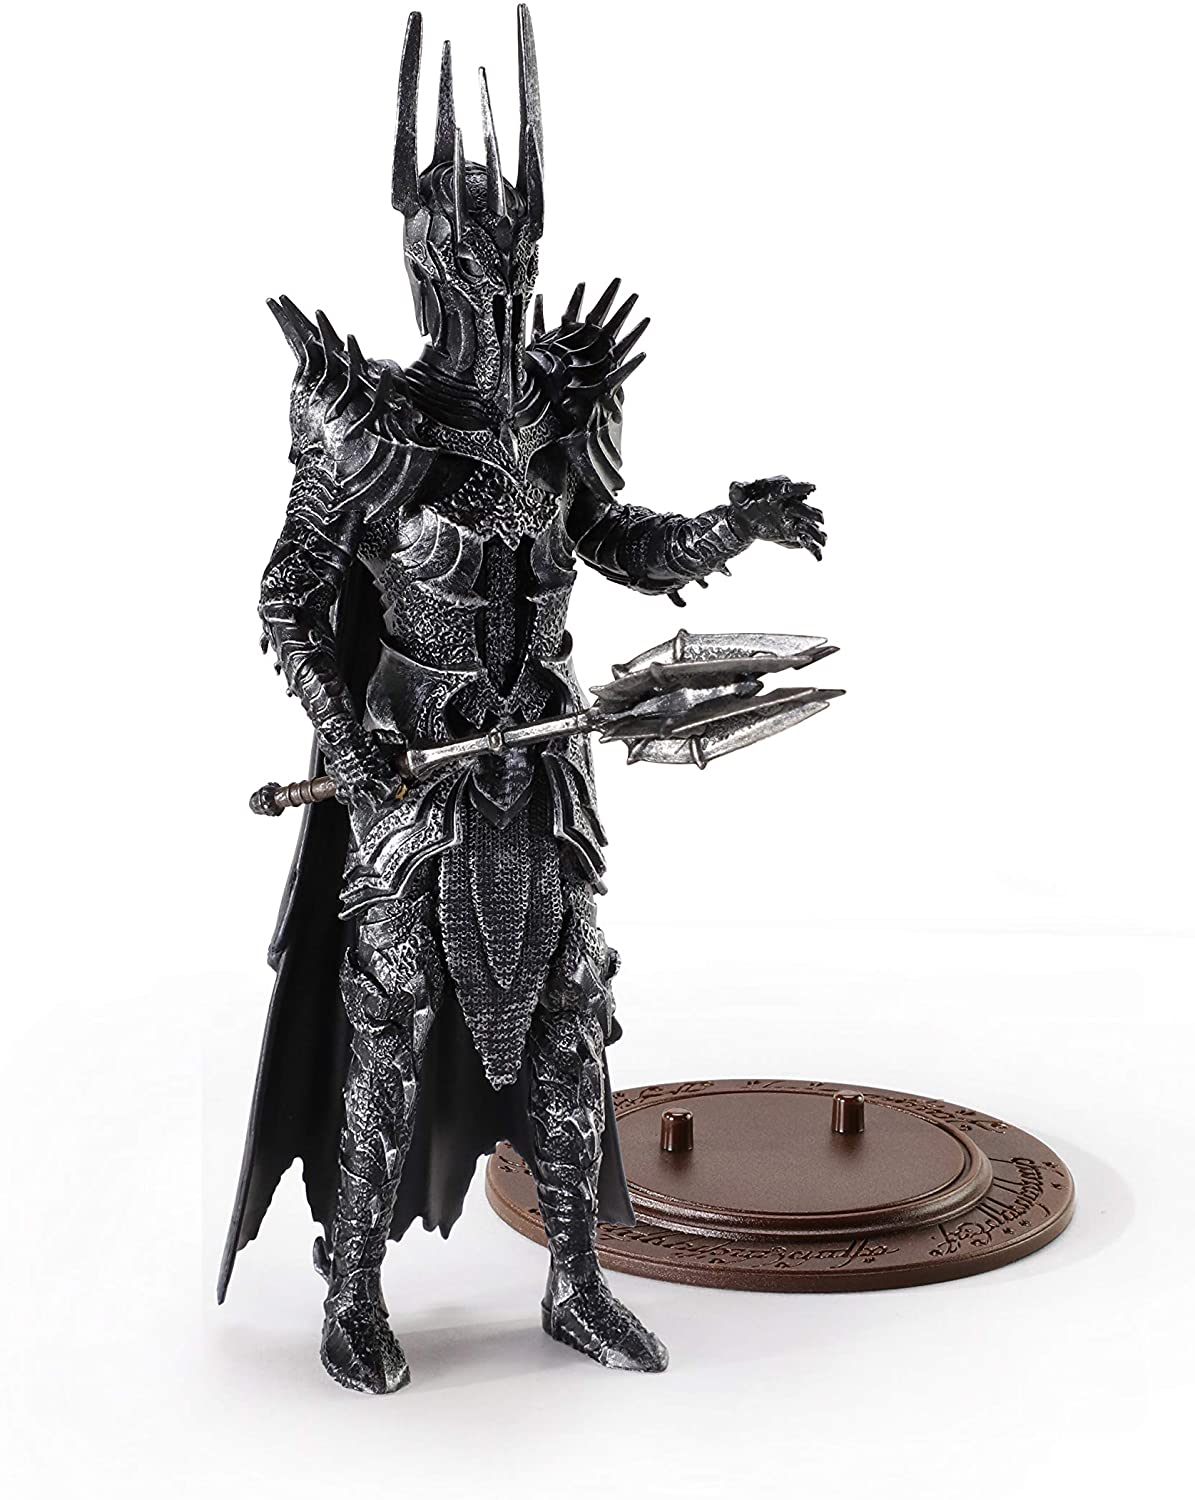 BendyFigs Lord of The Rings Sauron Oficial licenciado